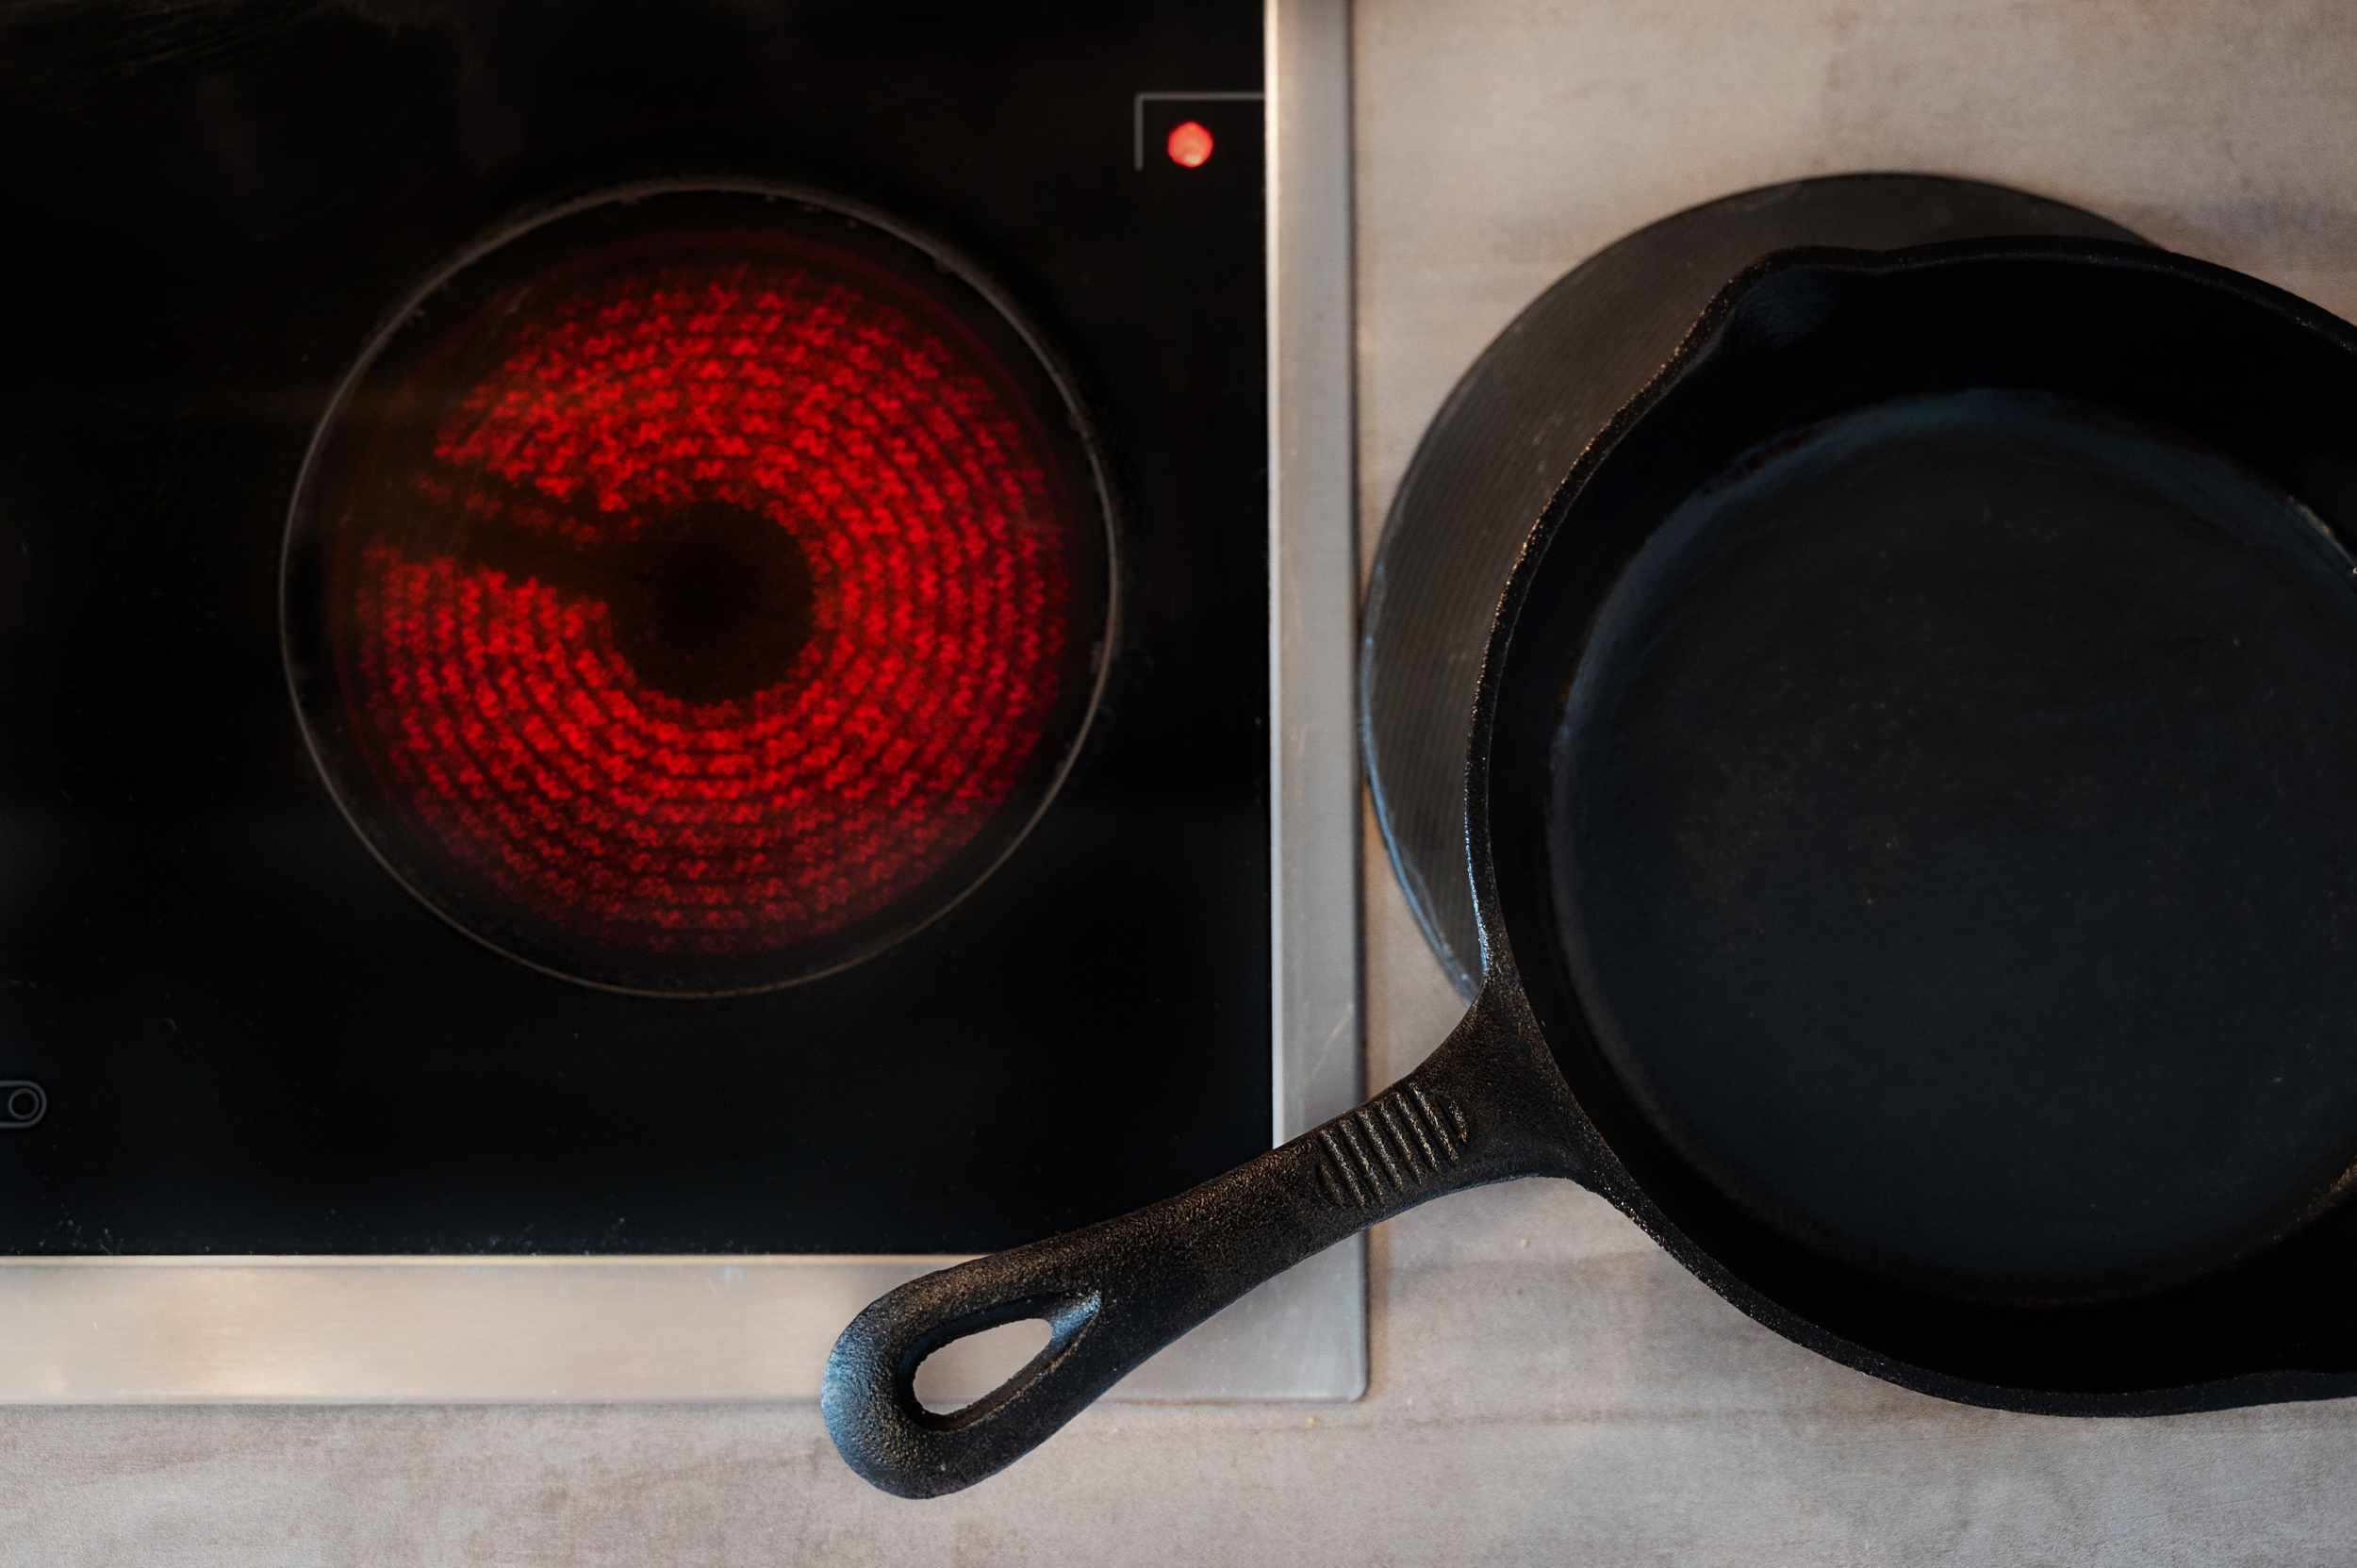 Cast iron griddle pan set on side of hot stove top to cool before cleaning